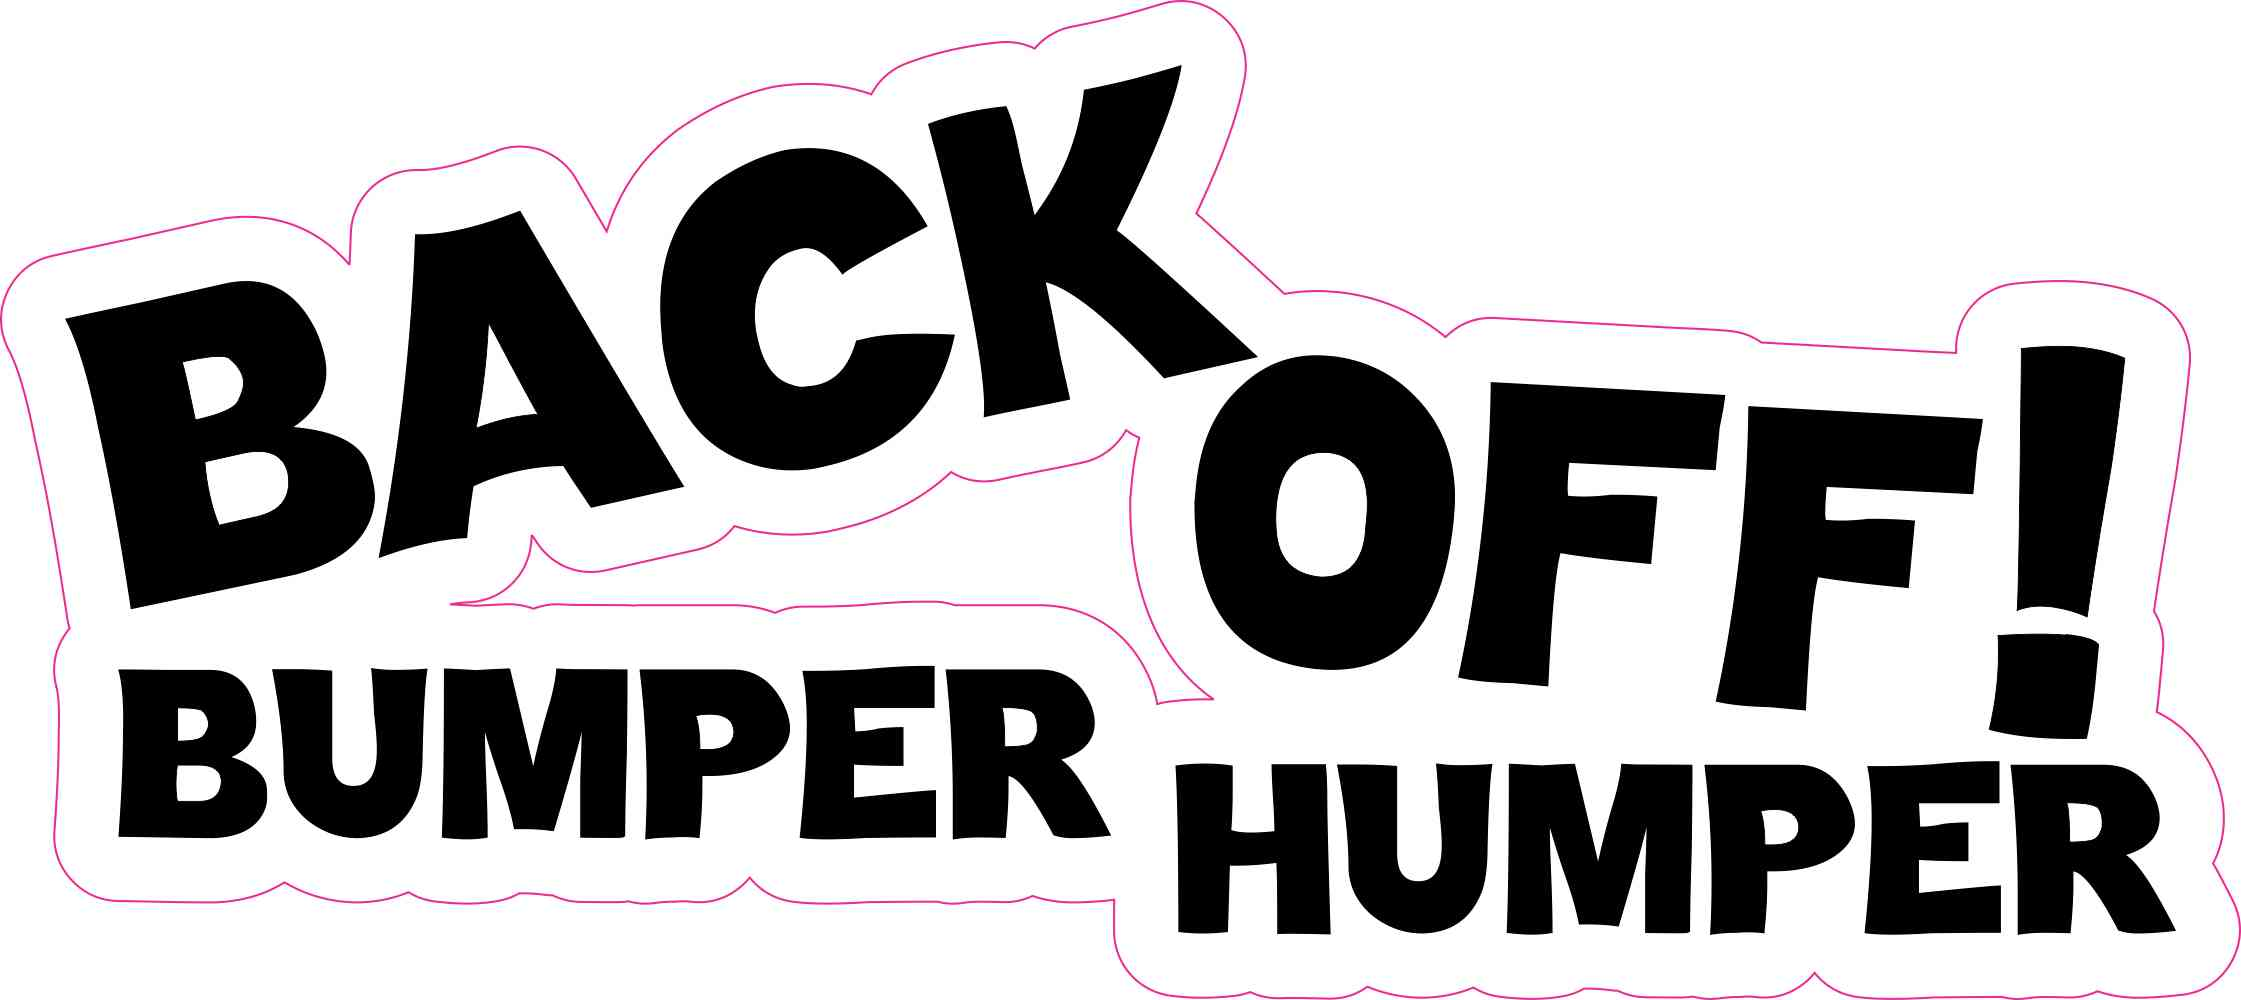 7 5in X 3 5in Black Back Off Bumper Humper Sticker Vinyl Decal Bumper Stickers